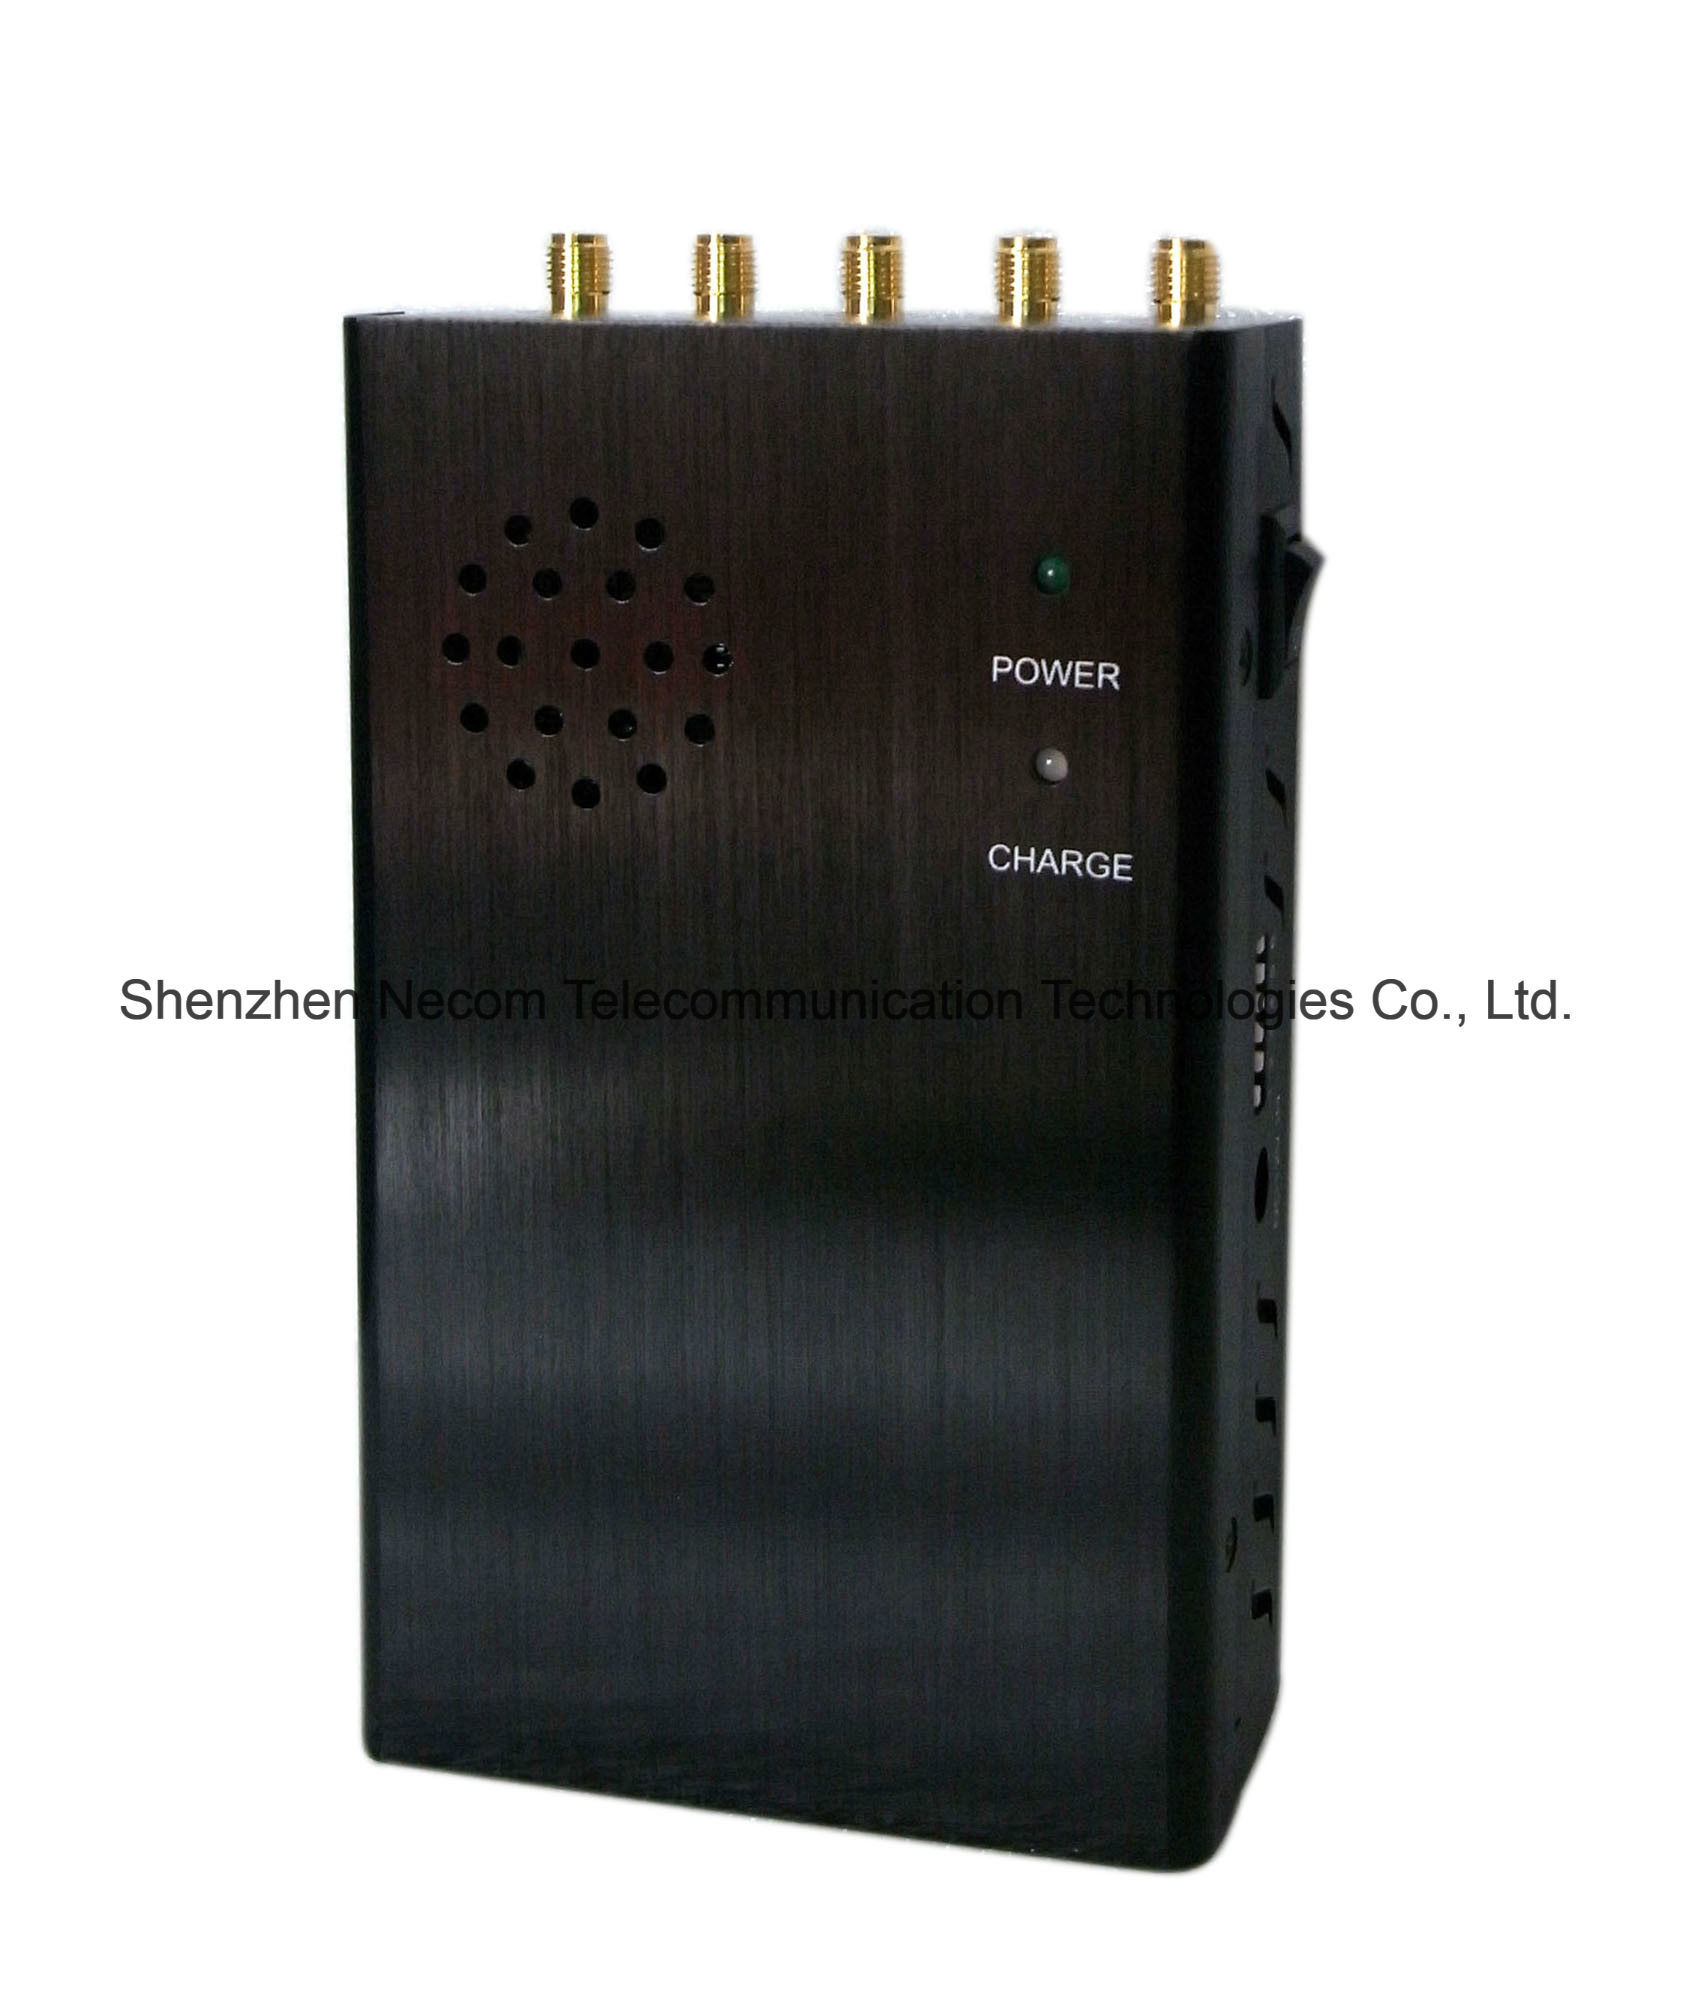 phone jammer lelong french - China Handheld, Portable, Mini, Mobile (built-in battery) GPS Signal Blokcer Signal Jammer,Handheld Cellphone Signal Jammer, Signal Blocker/ Shield,315/433MHz Jammer - China 5 Band Signal Blockers, Five Antennas Jammers